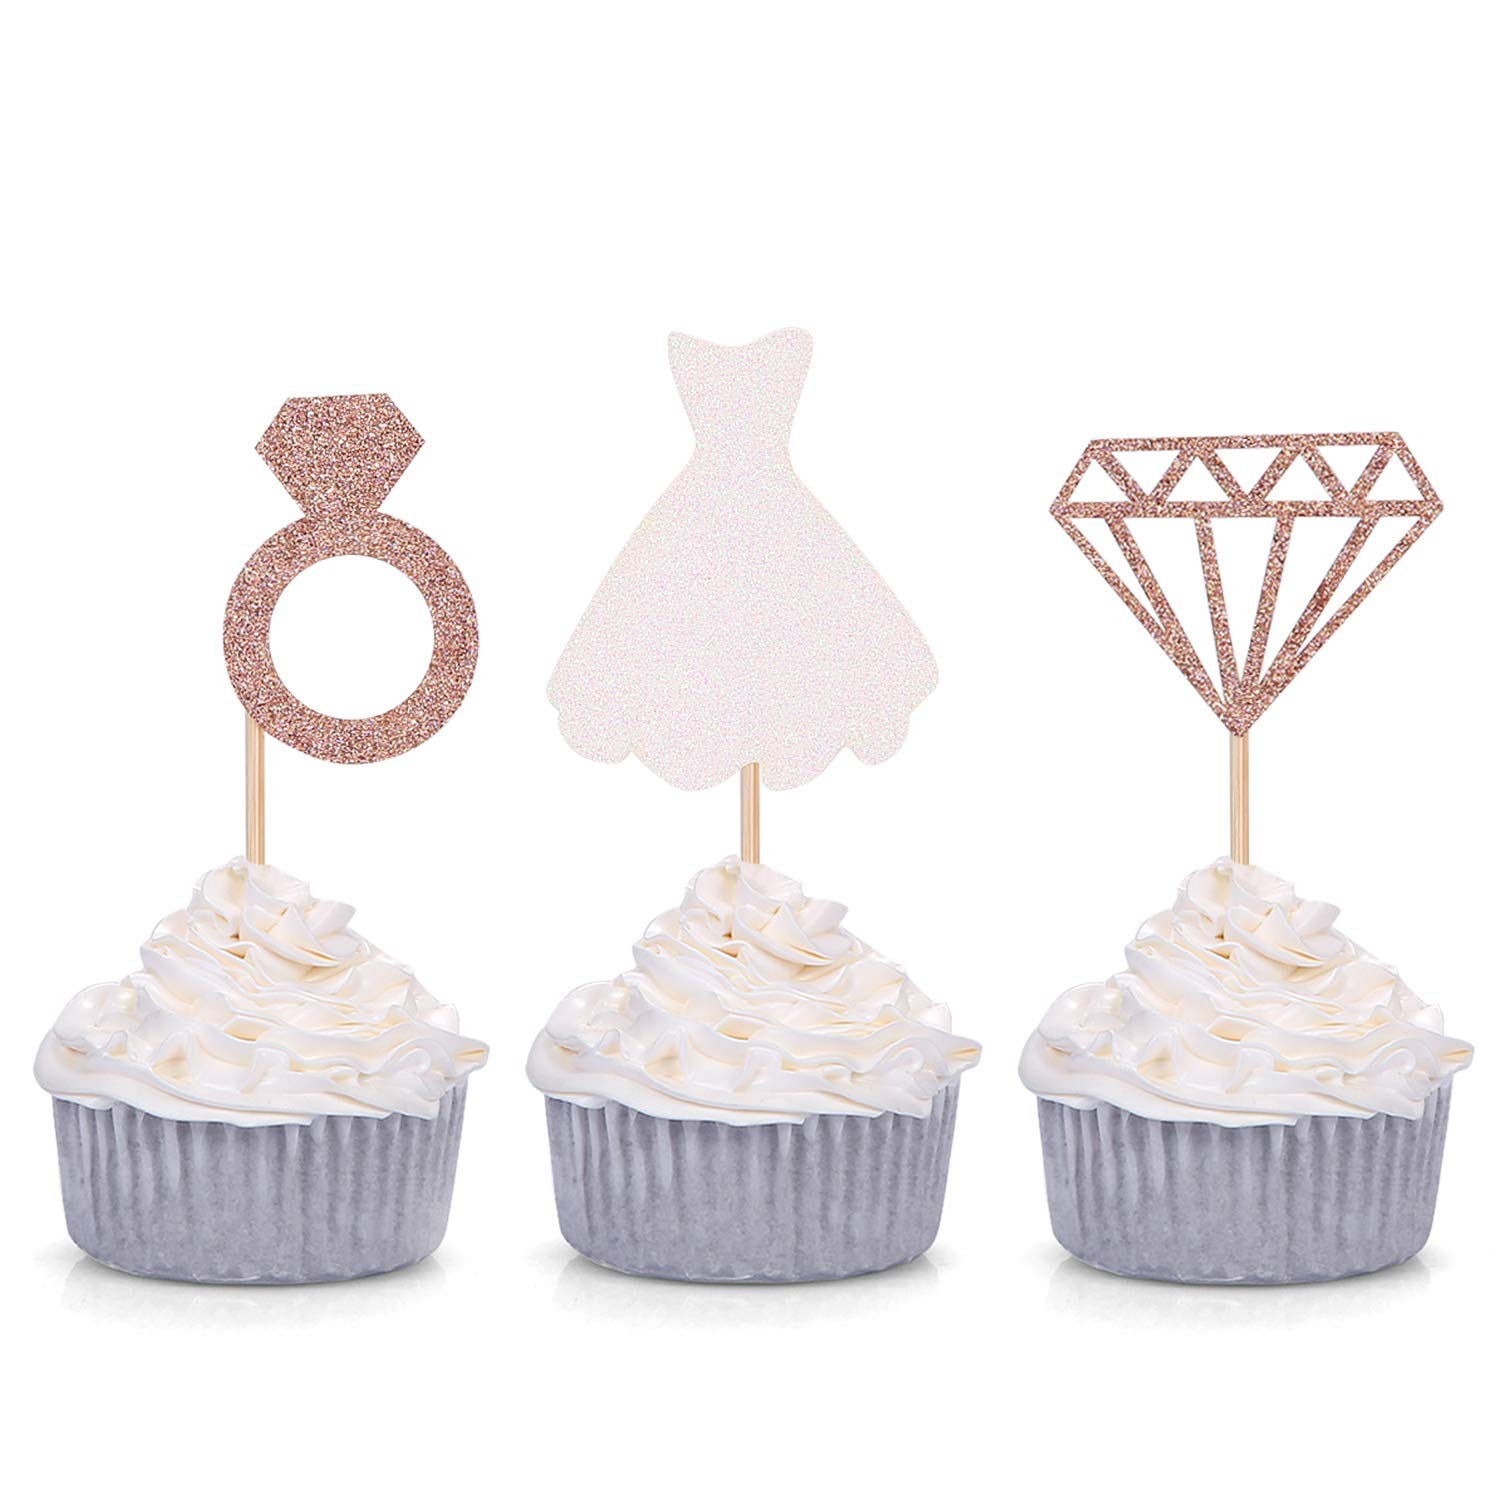 Set of 24 Glitter Damond Ring Wedding Dress Cupcake Toppers for Engagement Bridal Shower Decorations